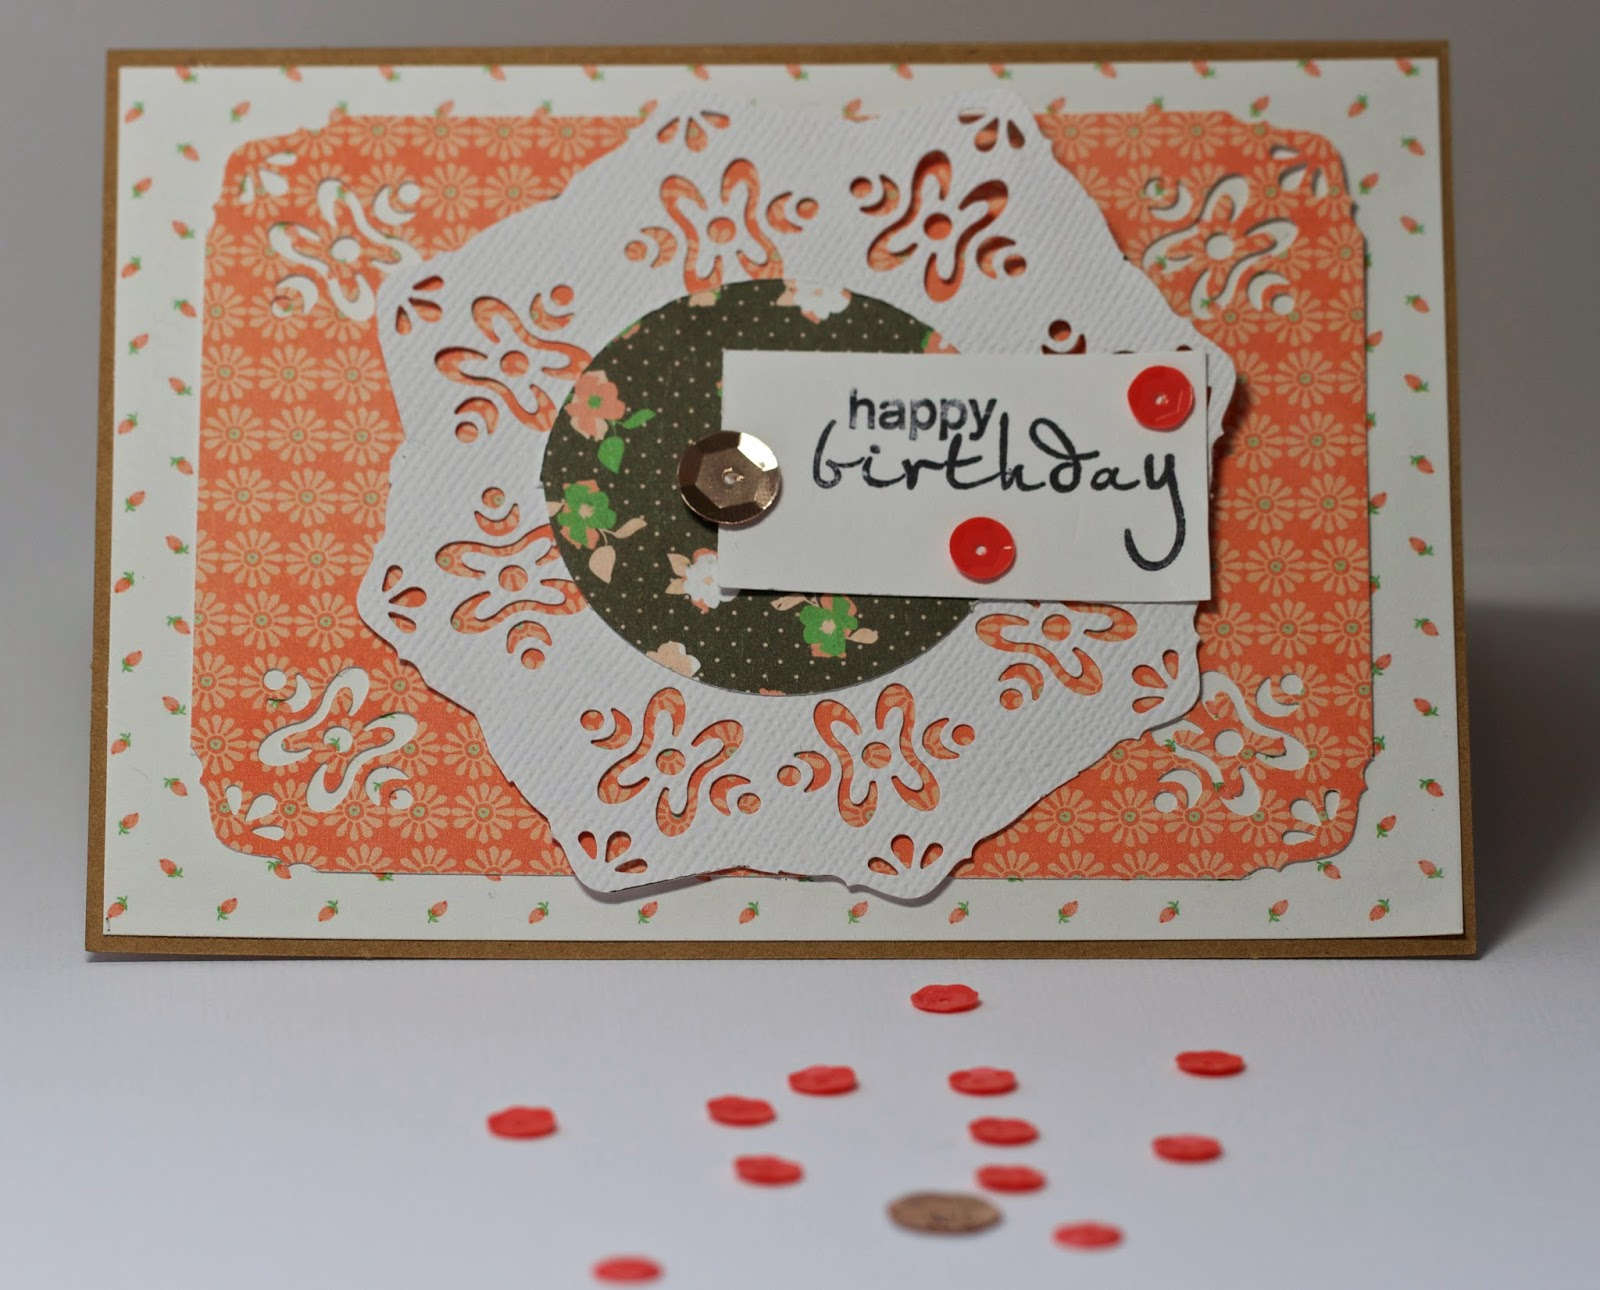 Love The Journey Kreaxions Happy Birthday Card